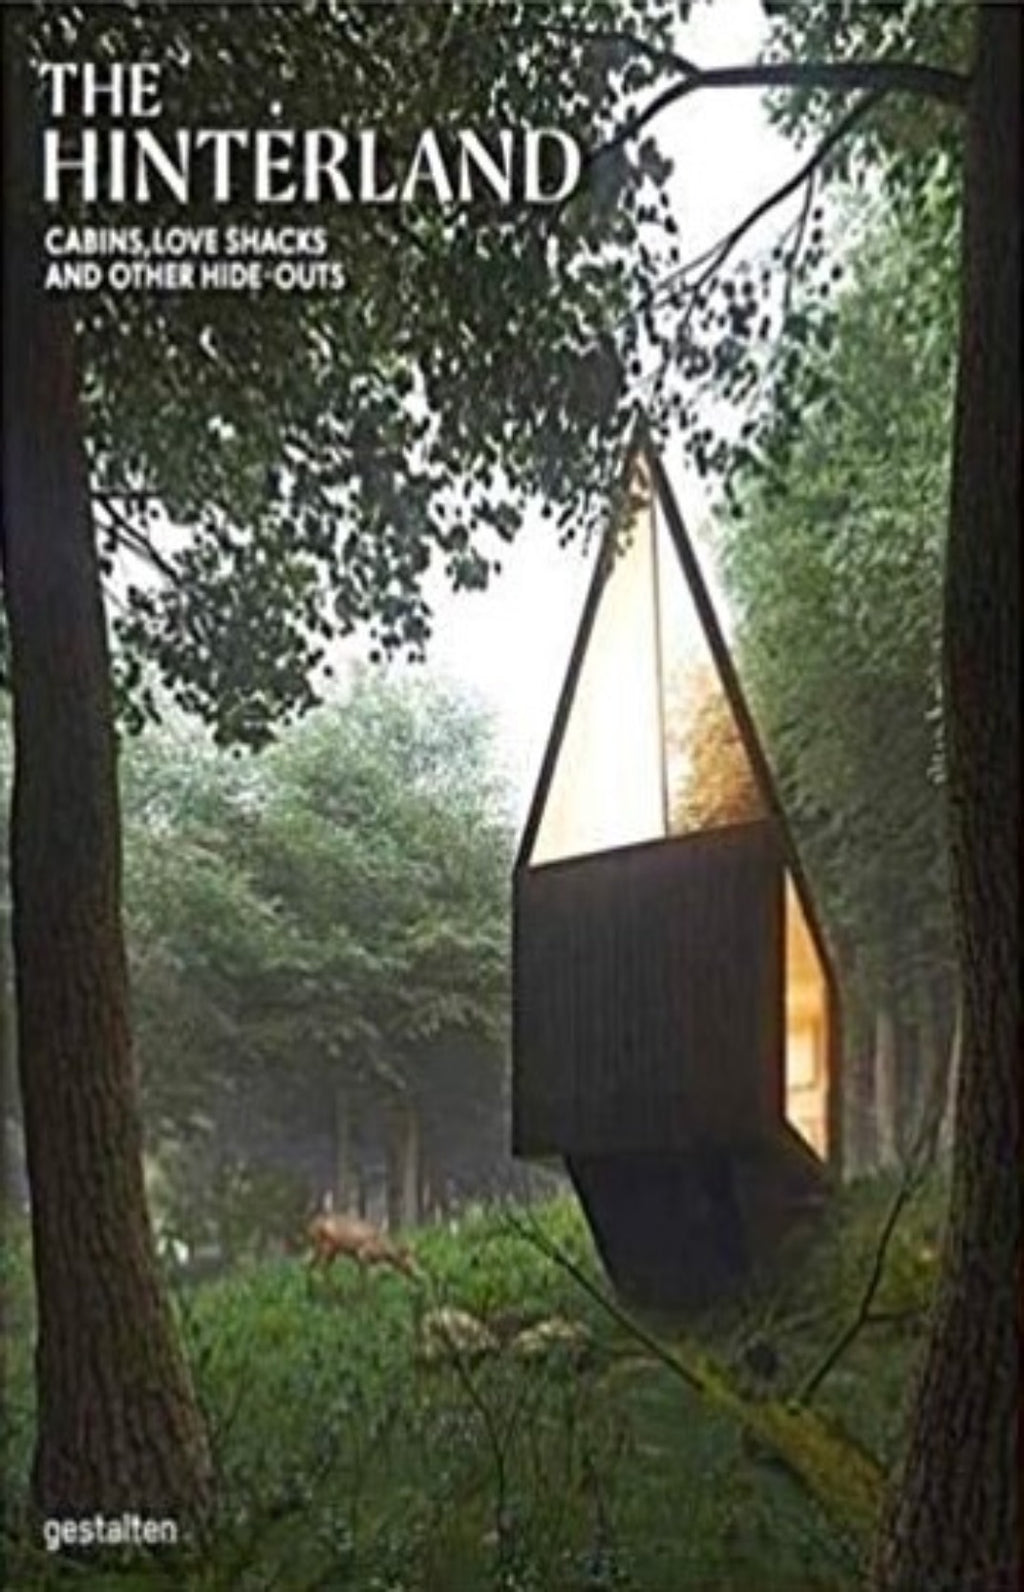 The Hinterland : Cabins, Love Shacks and Other Hide-Outs